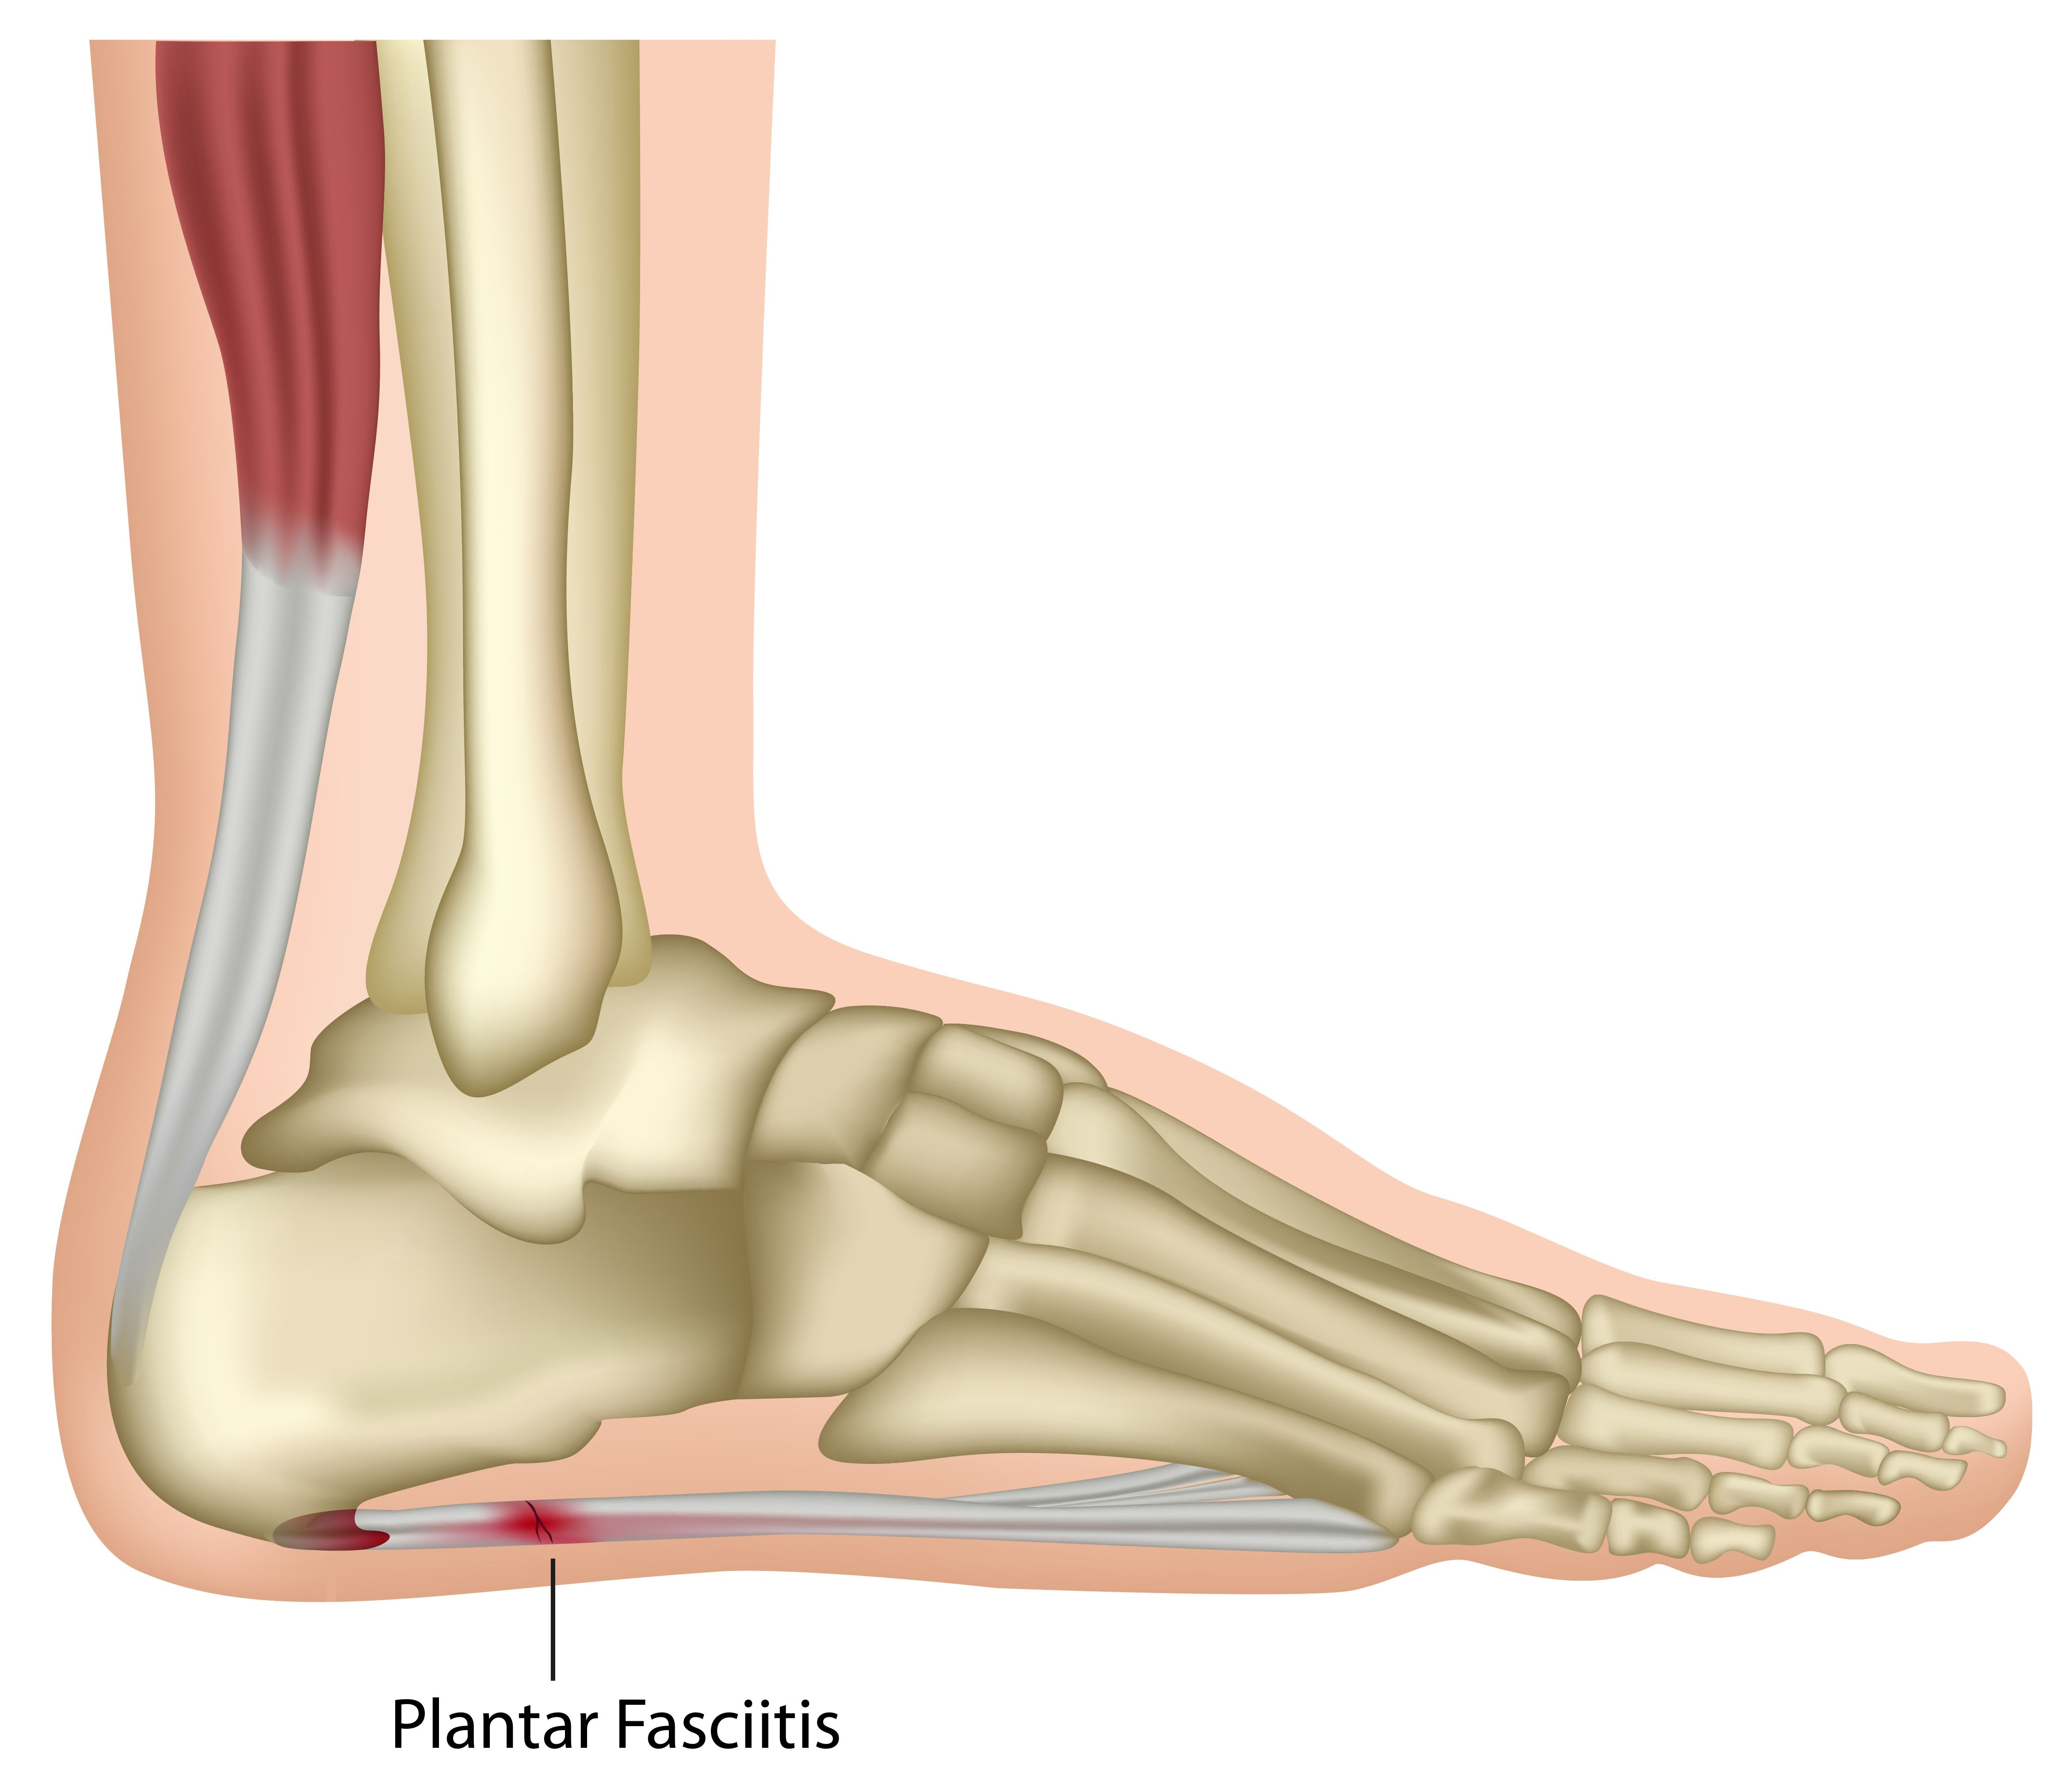 Plantar Fasciitis - Heel Pain Causing A Hobble In The Morning